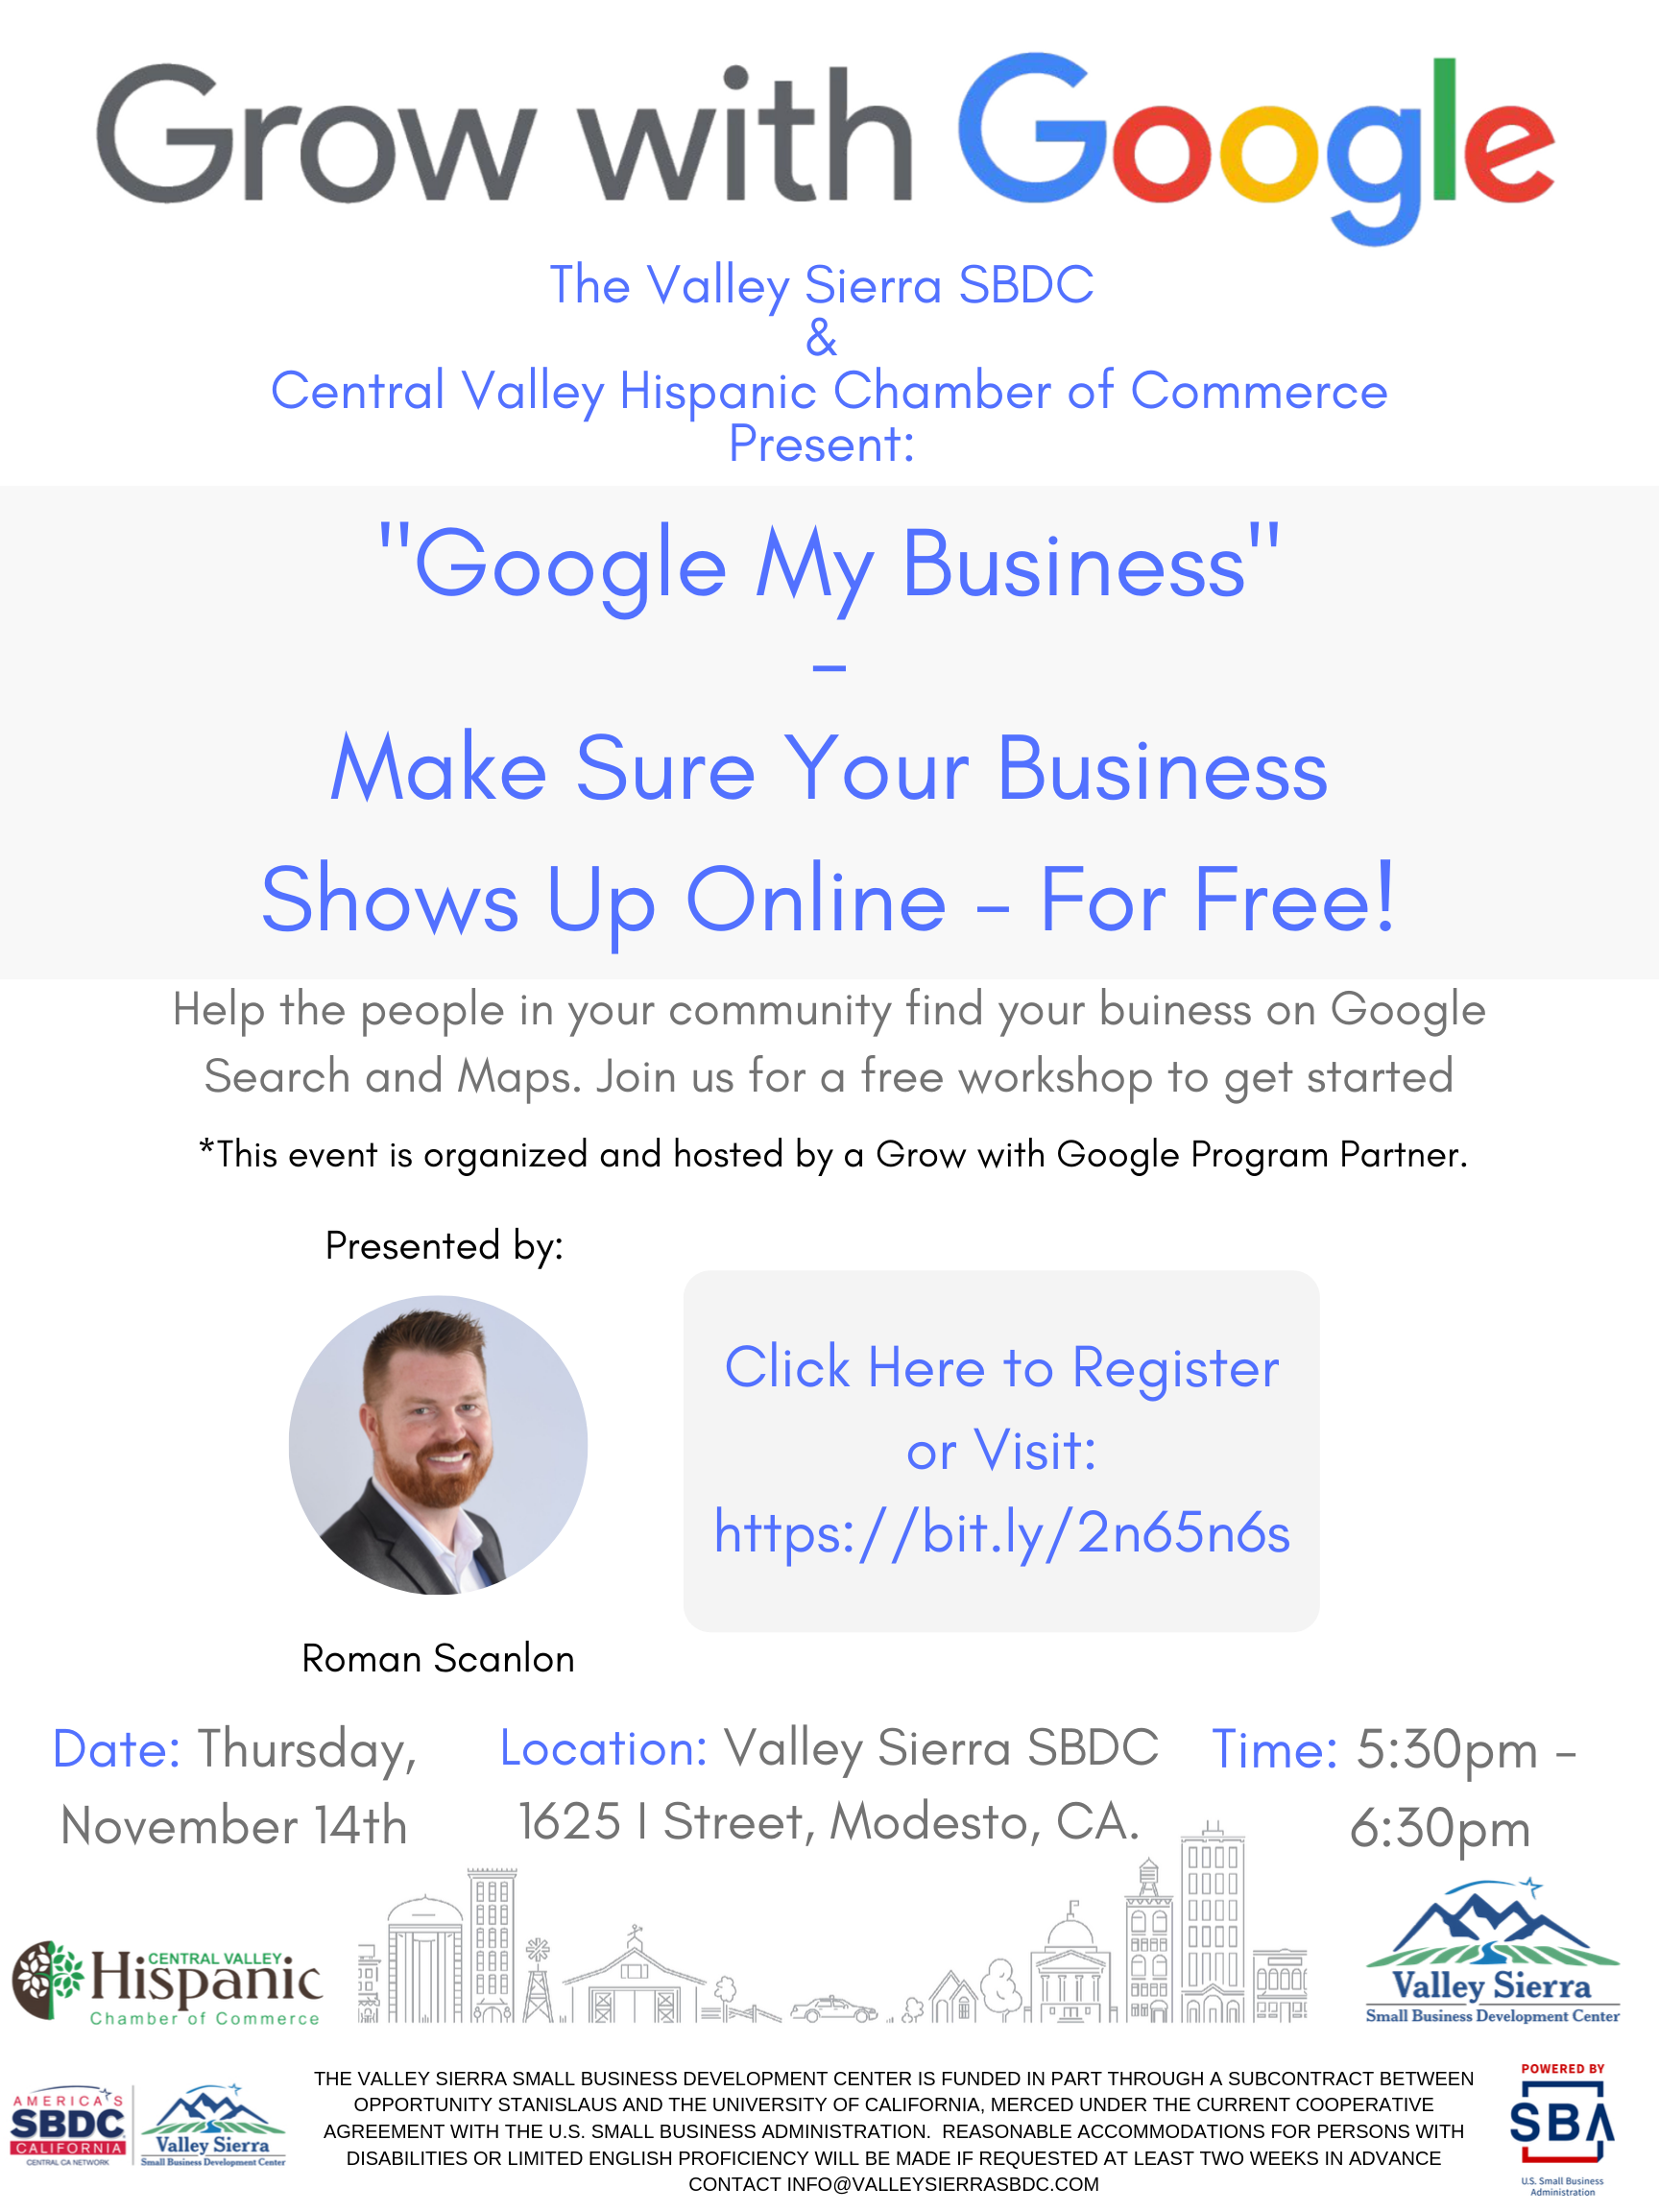 Event Flyer, Grow with Google, Date: Thursday, Nov. 14th, 2019, Time, 5:30pm - 6:30pm, For more details contact info@valleysierrasbdc.com.